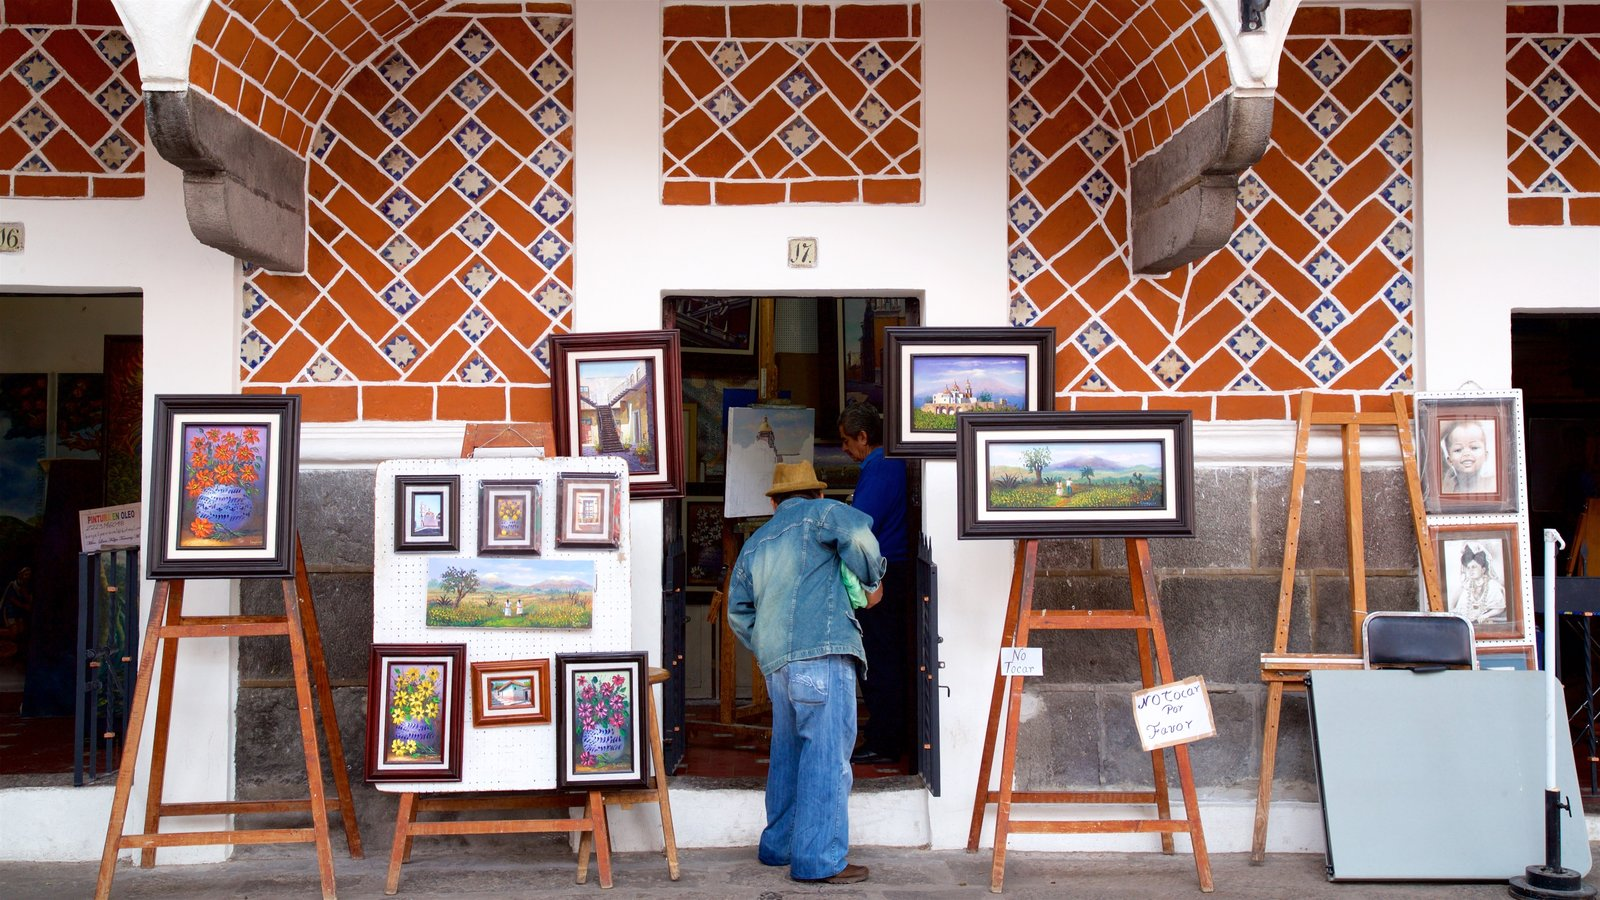 Artist's Quarter - what are the major tourist attractions in mexico